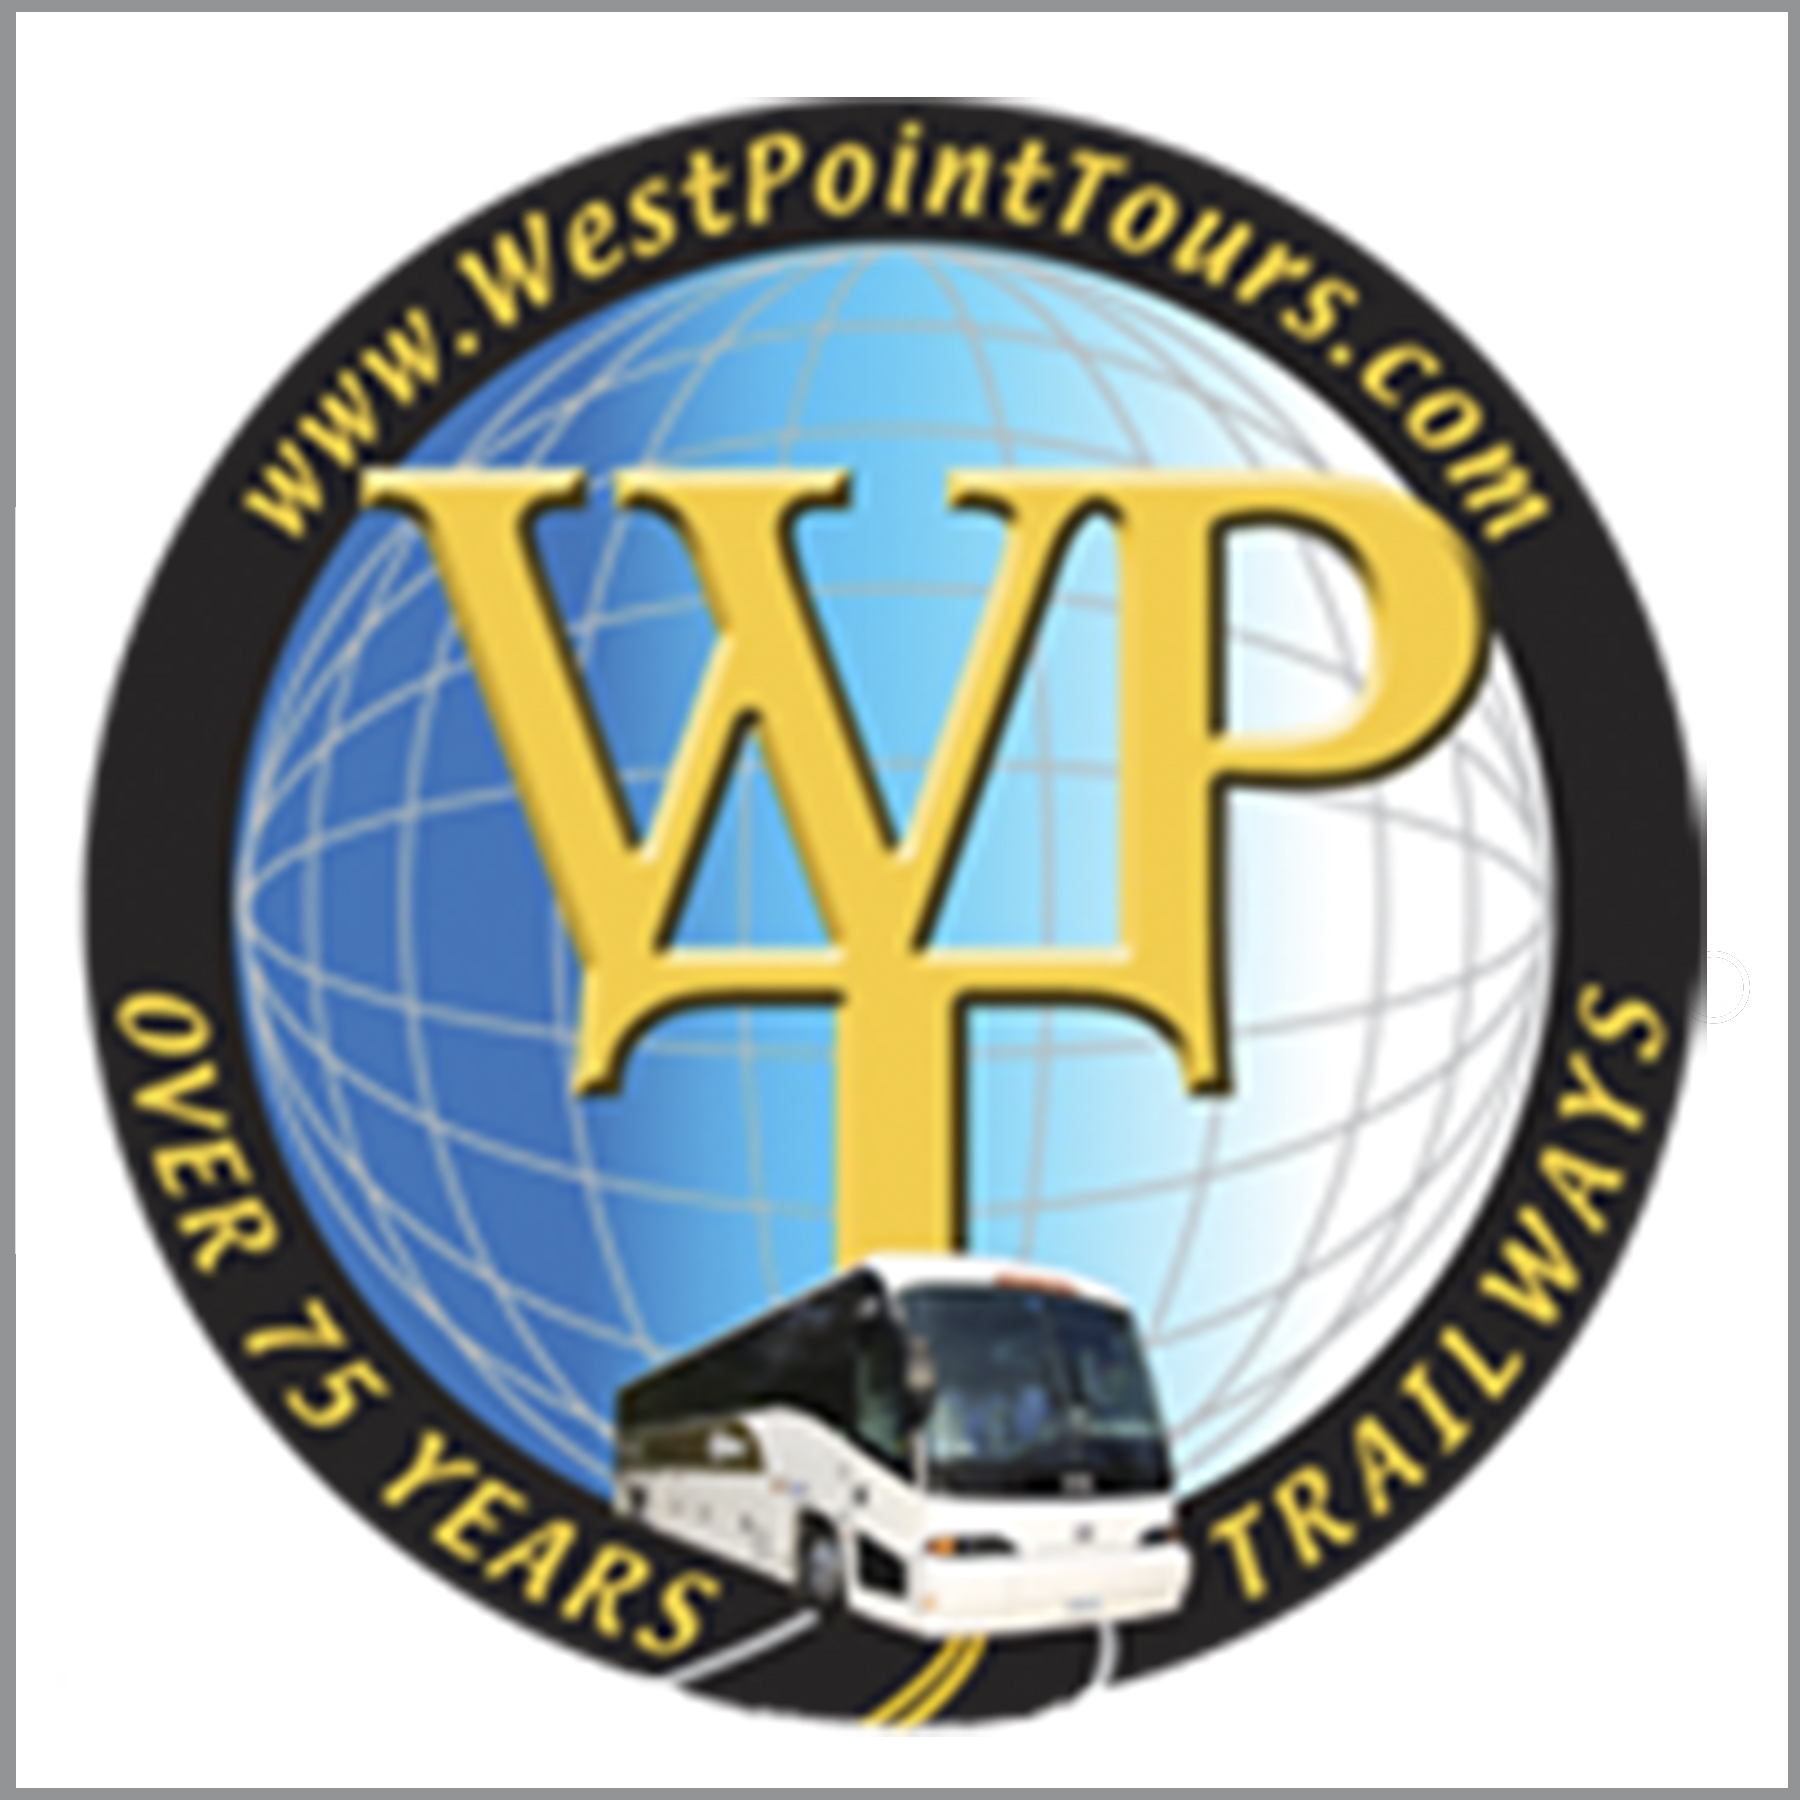 WEST POINT TOURS LOGO.jpg